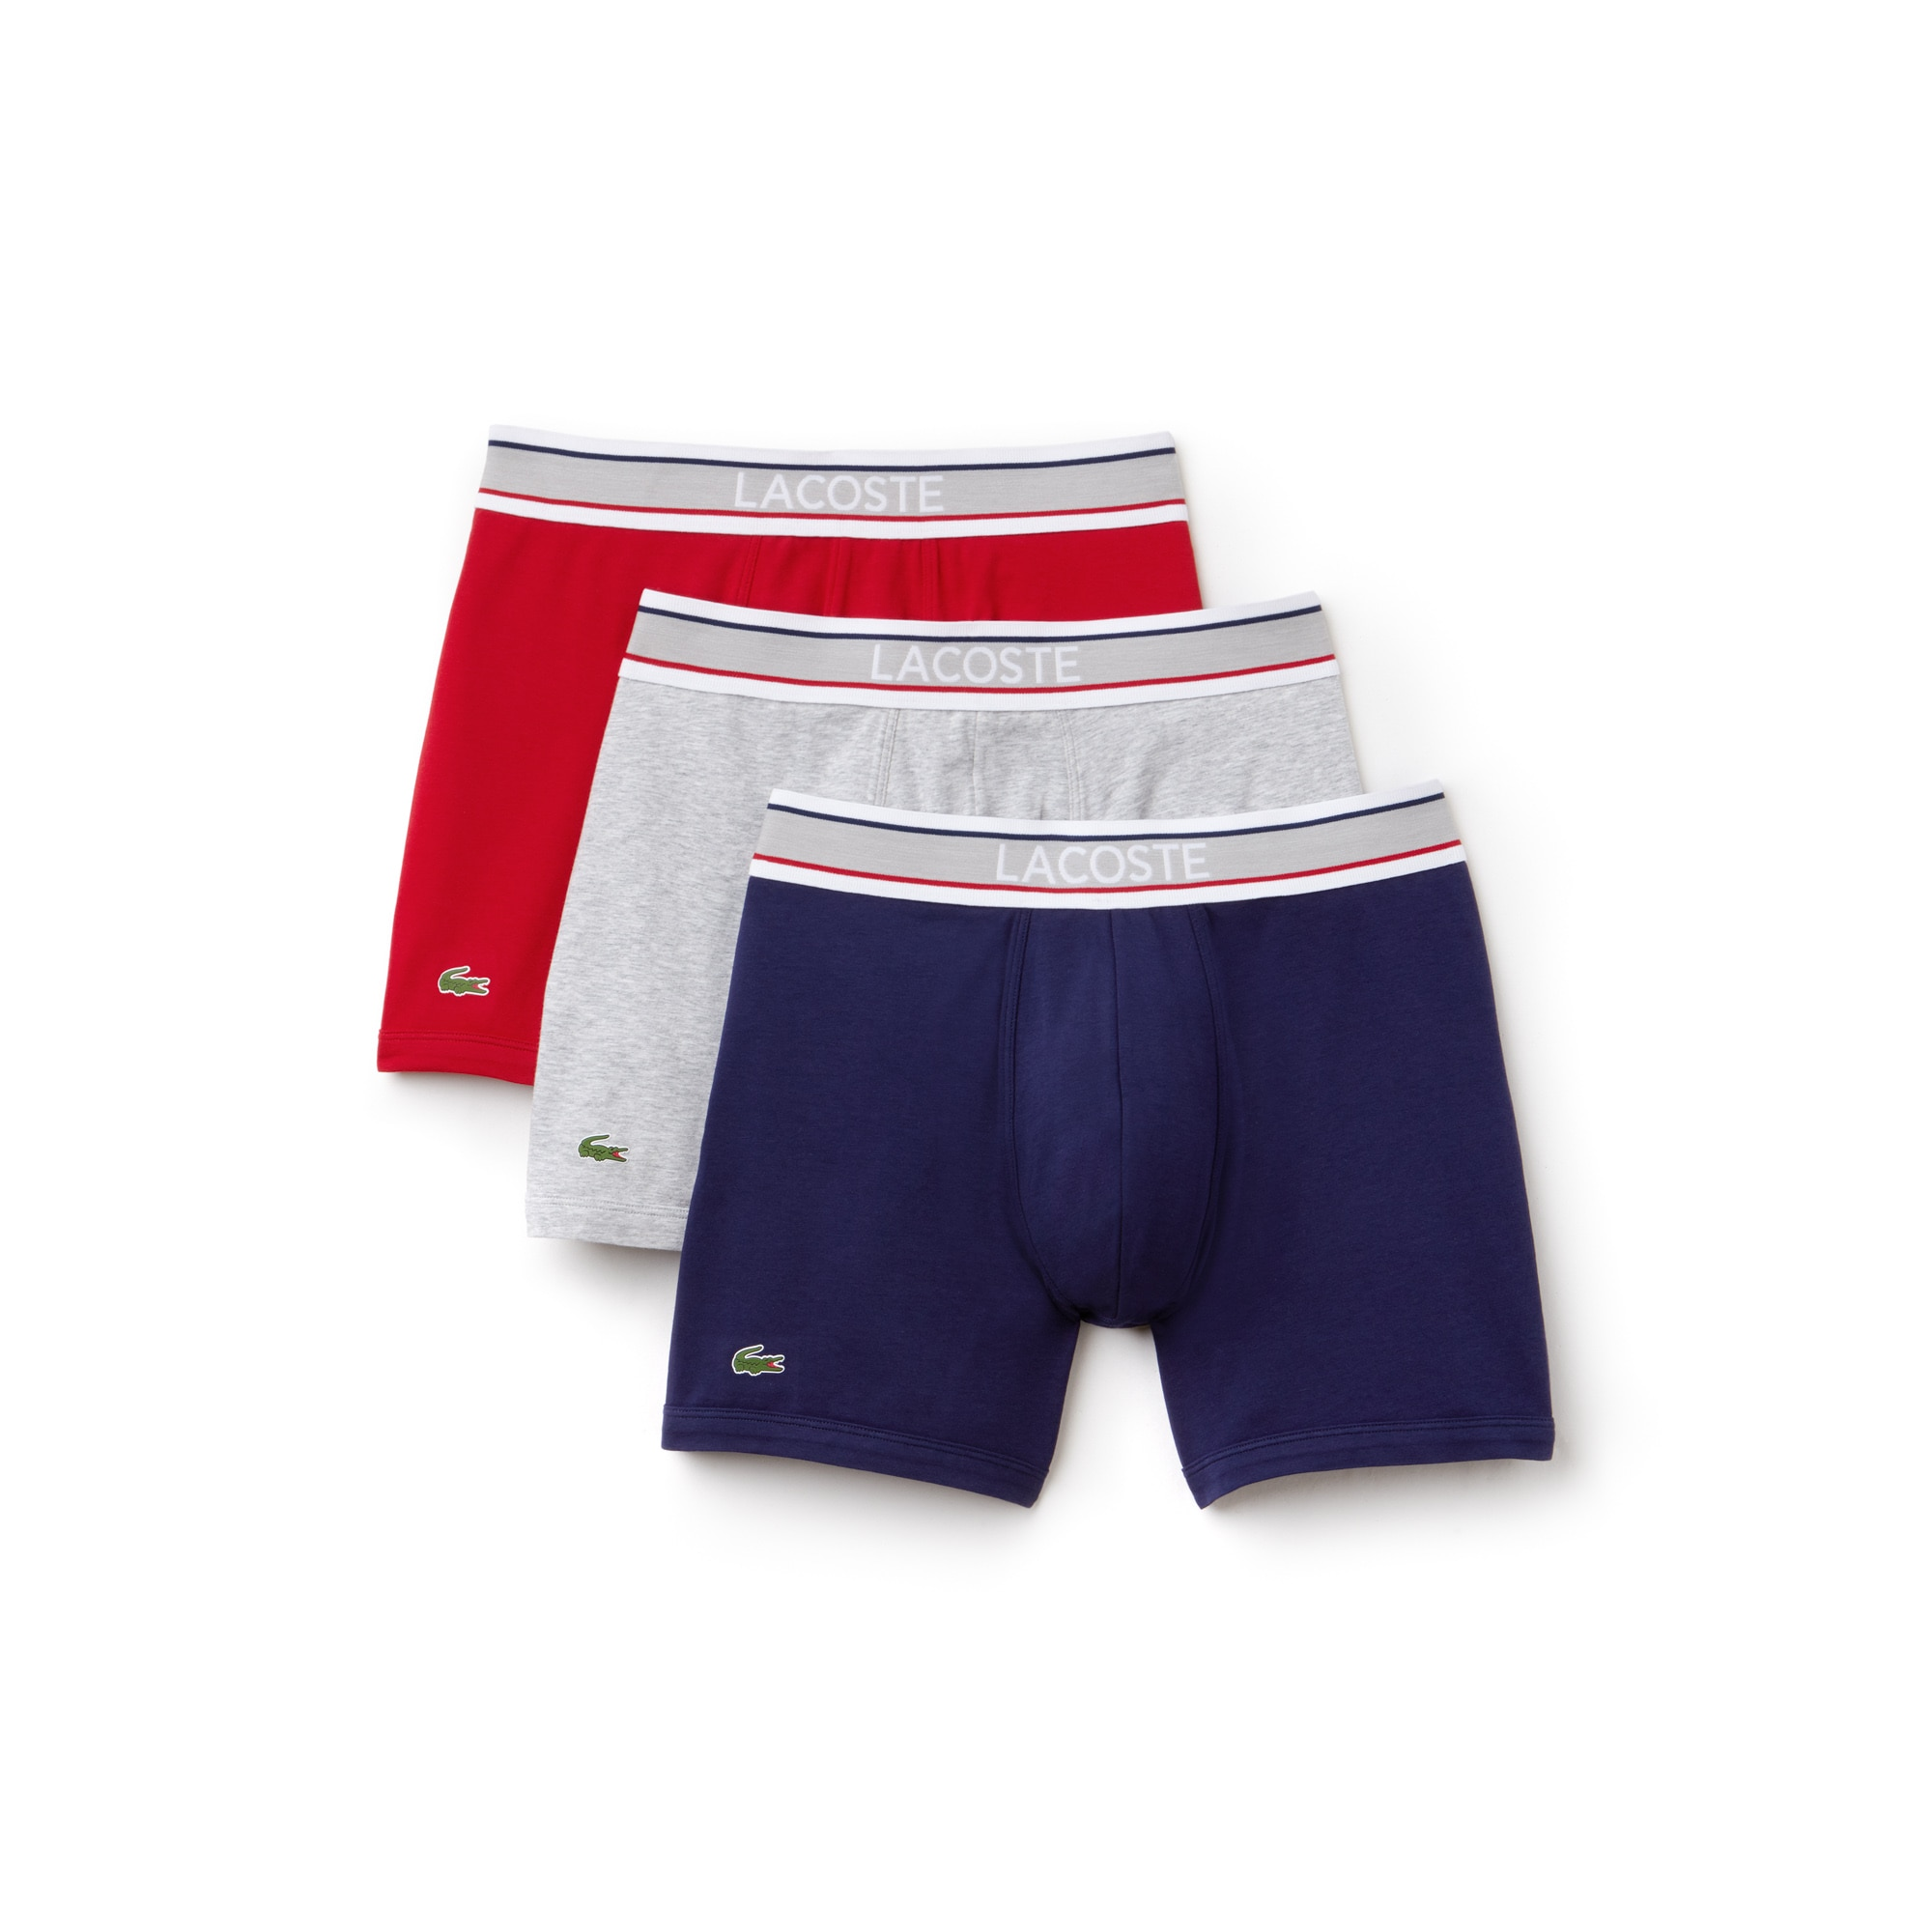 Men's 3 Pack Flag Waistband Cotton Stretch Boxer Brief